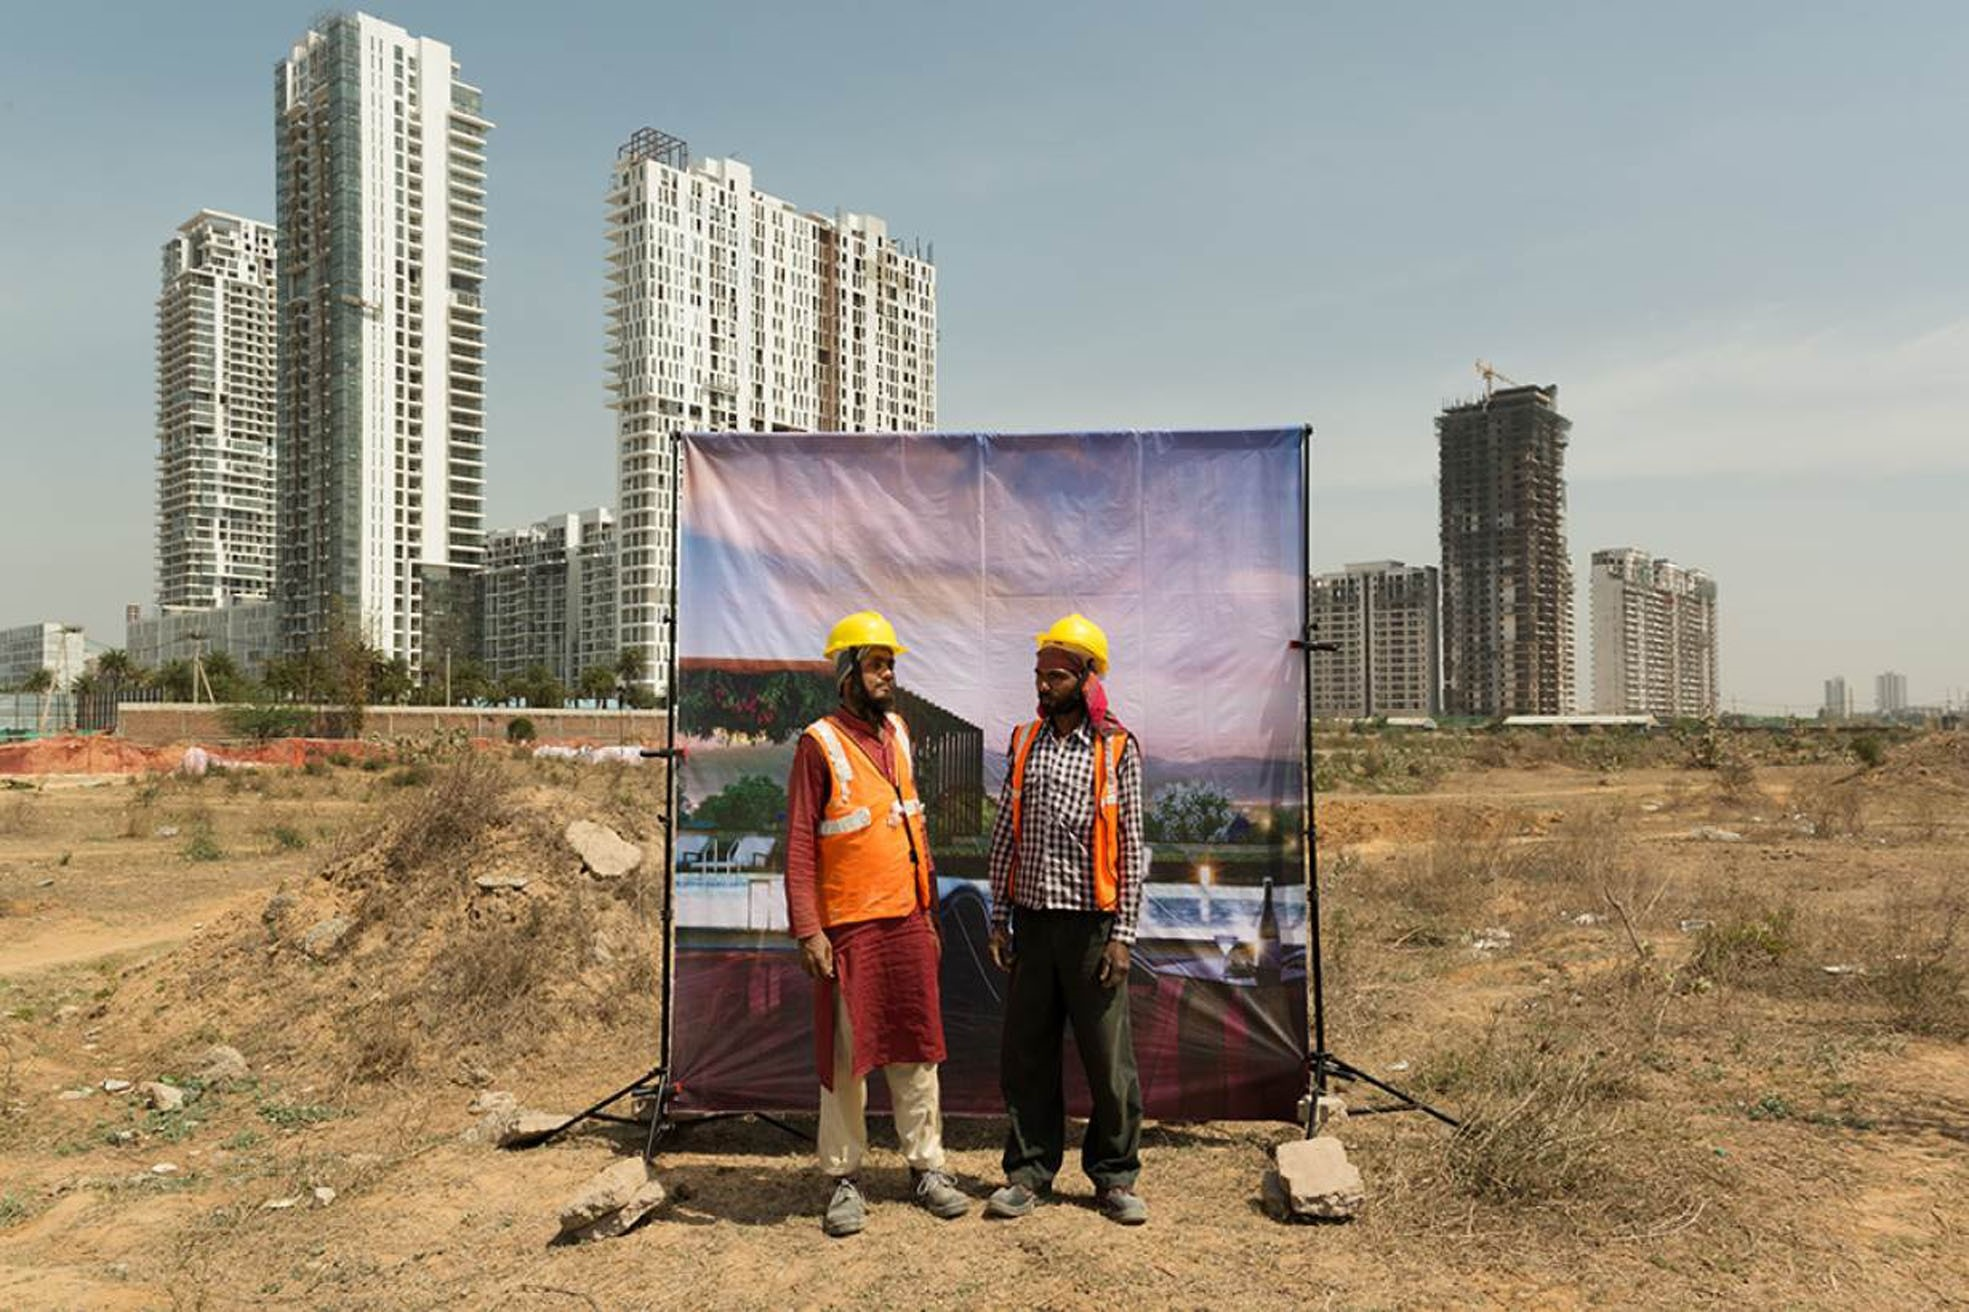 Construction workers pose against large, glossy advertisements for luxury developments, with construction sites looming behind them.